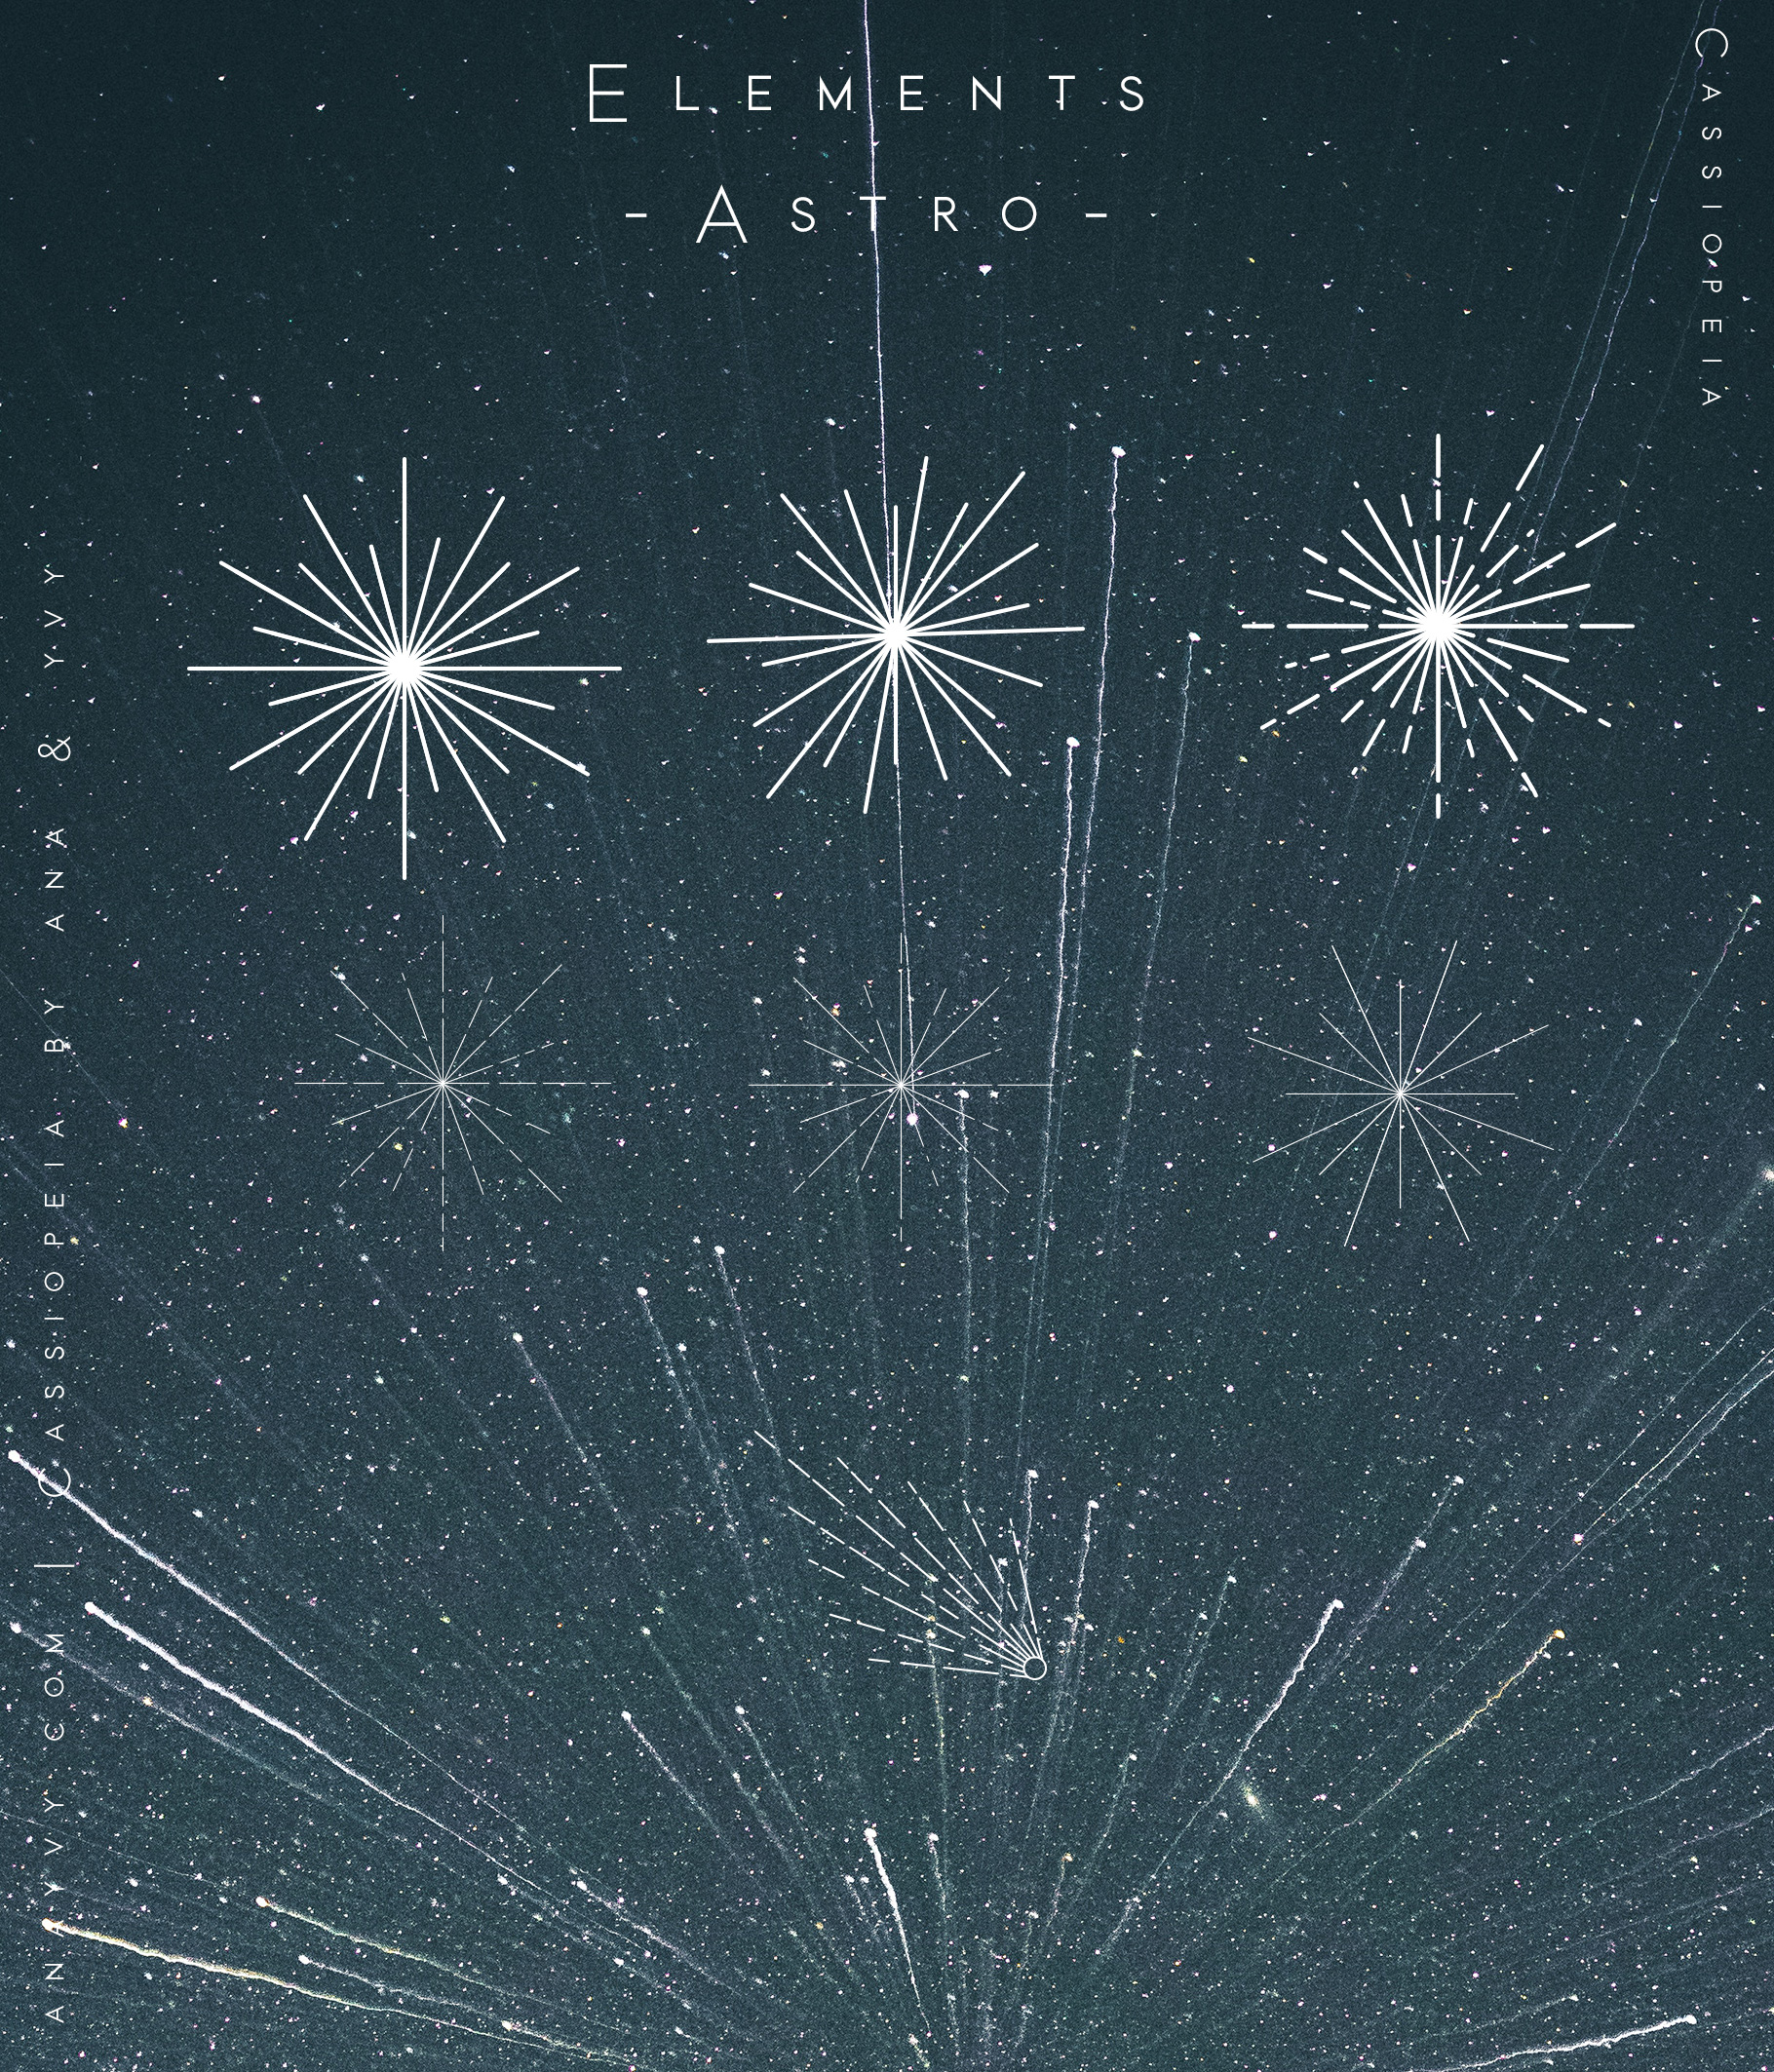 0_Cassiopeia-logo-design-animation-anayvy-motion-vintage-hand-greenery-apothecary-Astro